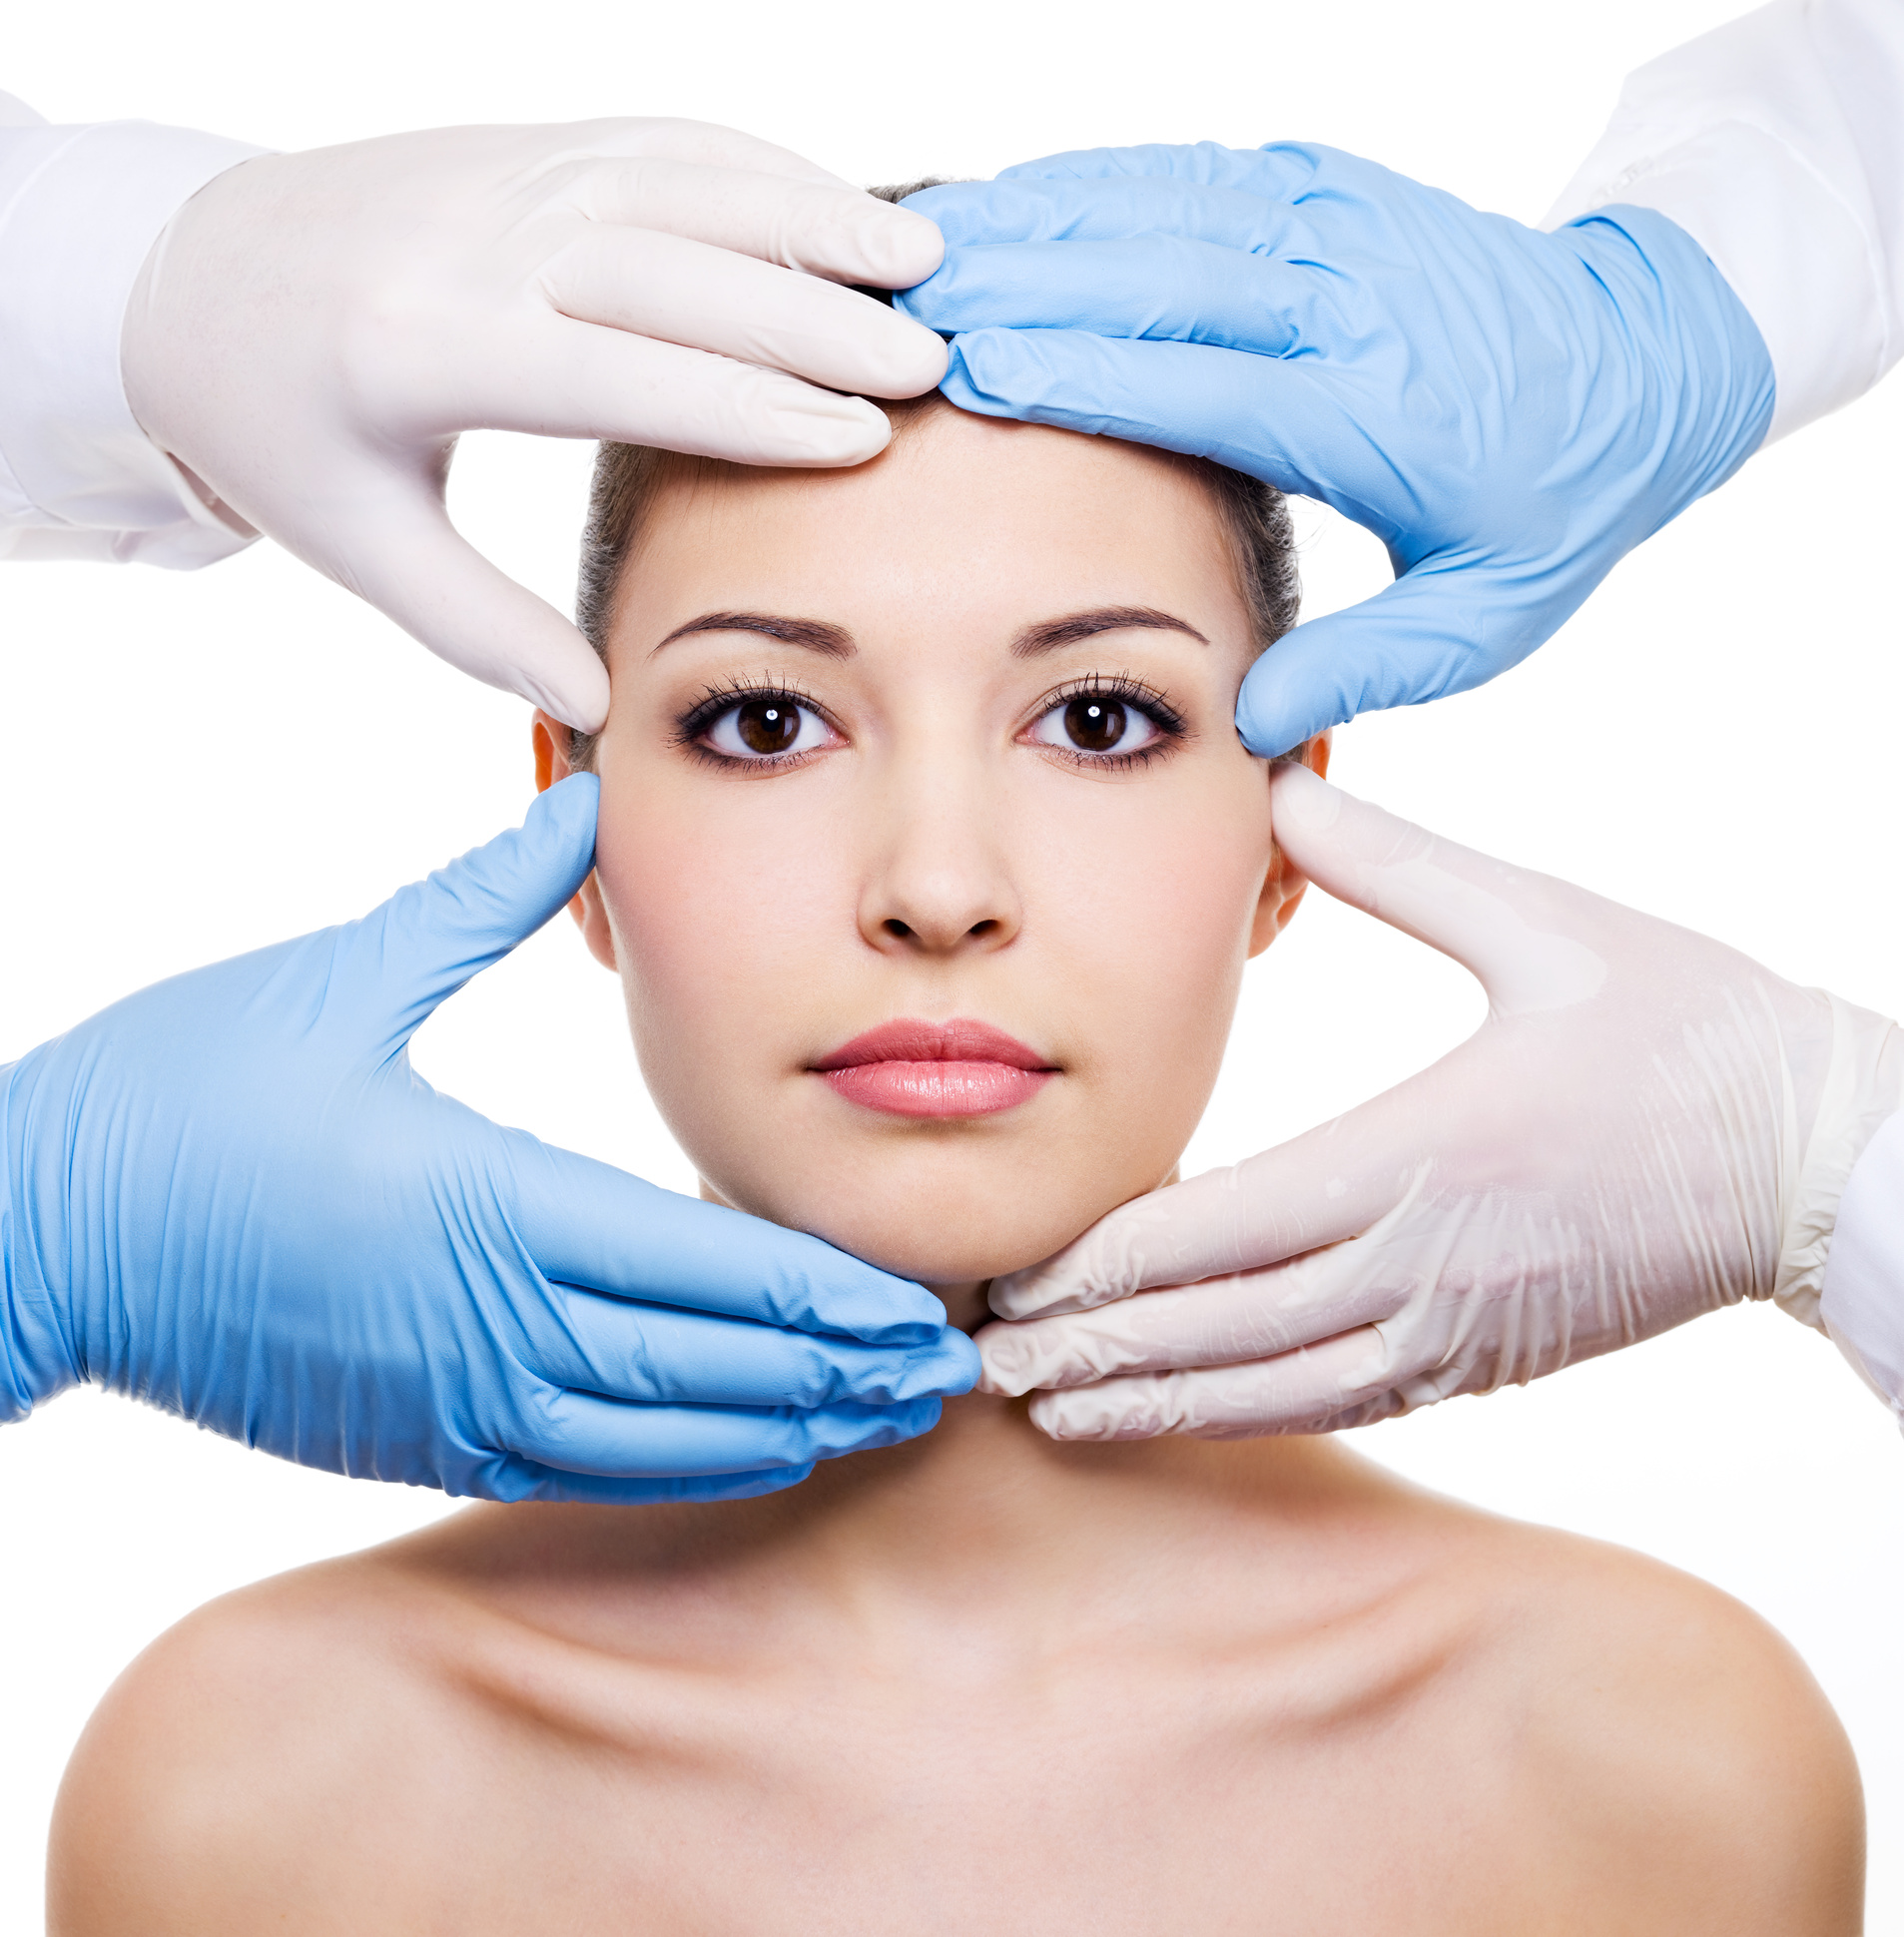 Facial reshaping without surgery